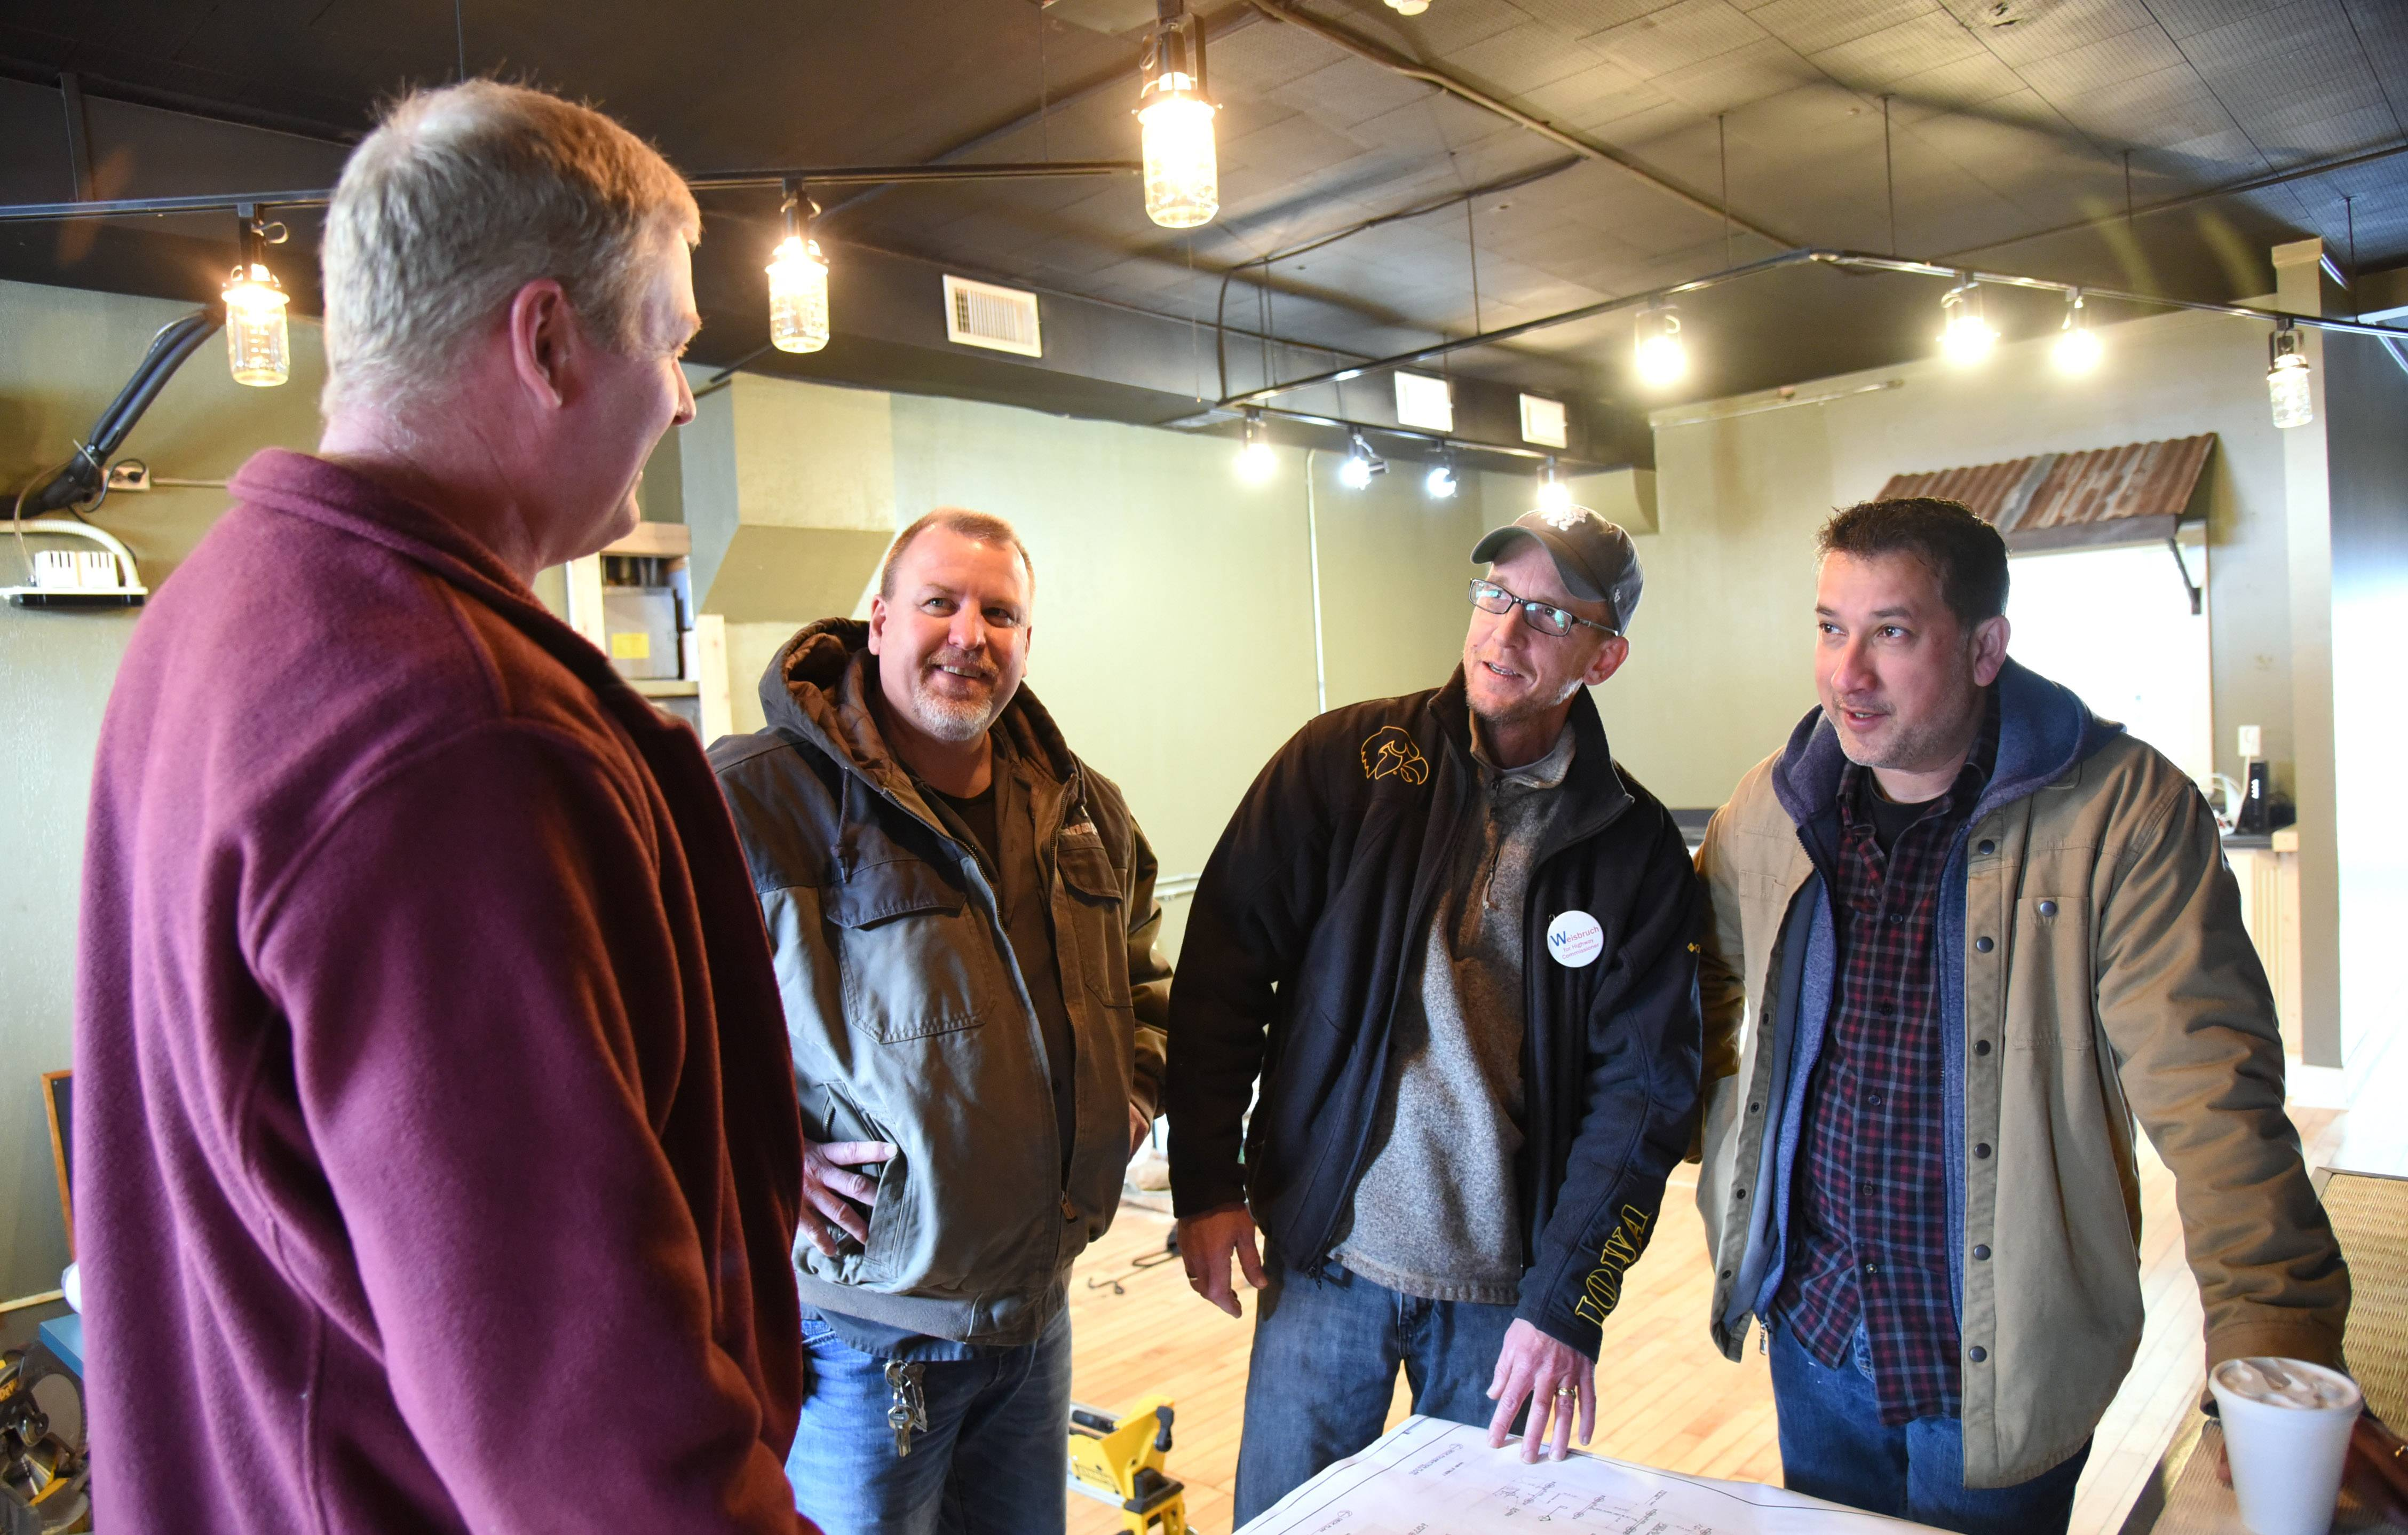 The Green Goat co-owners, from left, Jeff Middleton, Brian Middleton, Joe Kafka and Aaron Aggarwal, chat inside the restaurant space at 203 S. Main St. in downtown Wauconda. They plan to open the new eatery March 27.